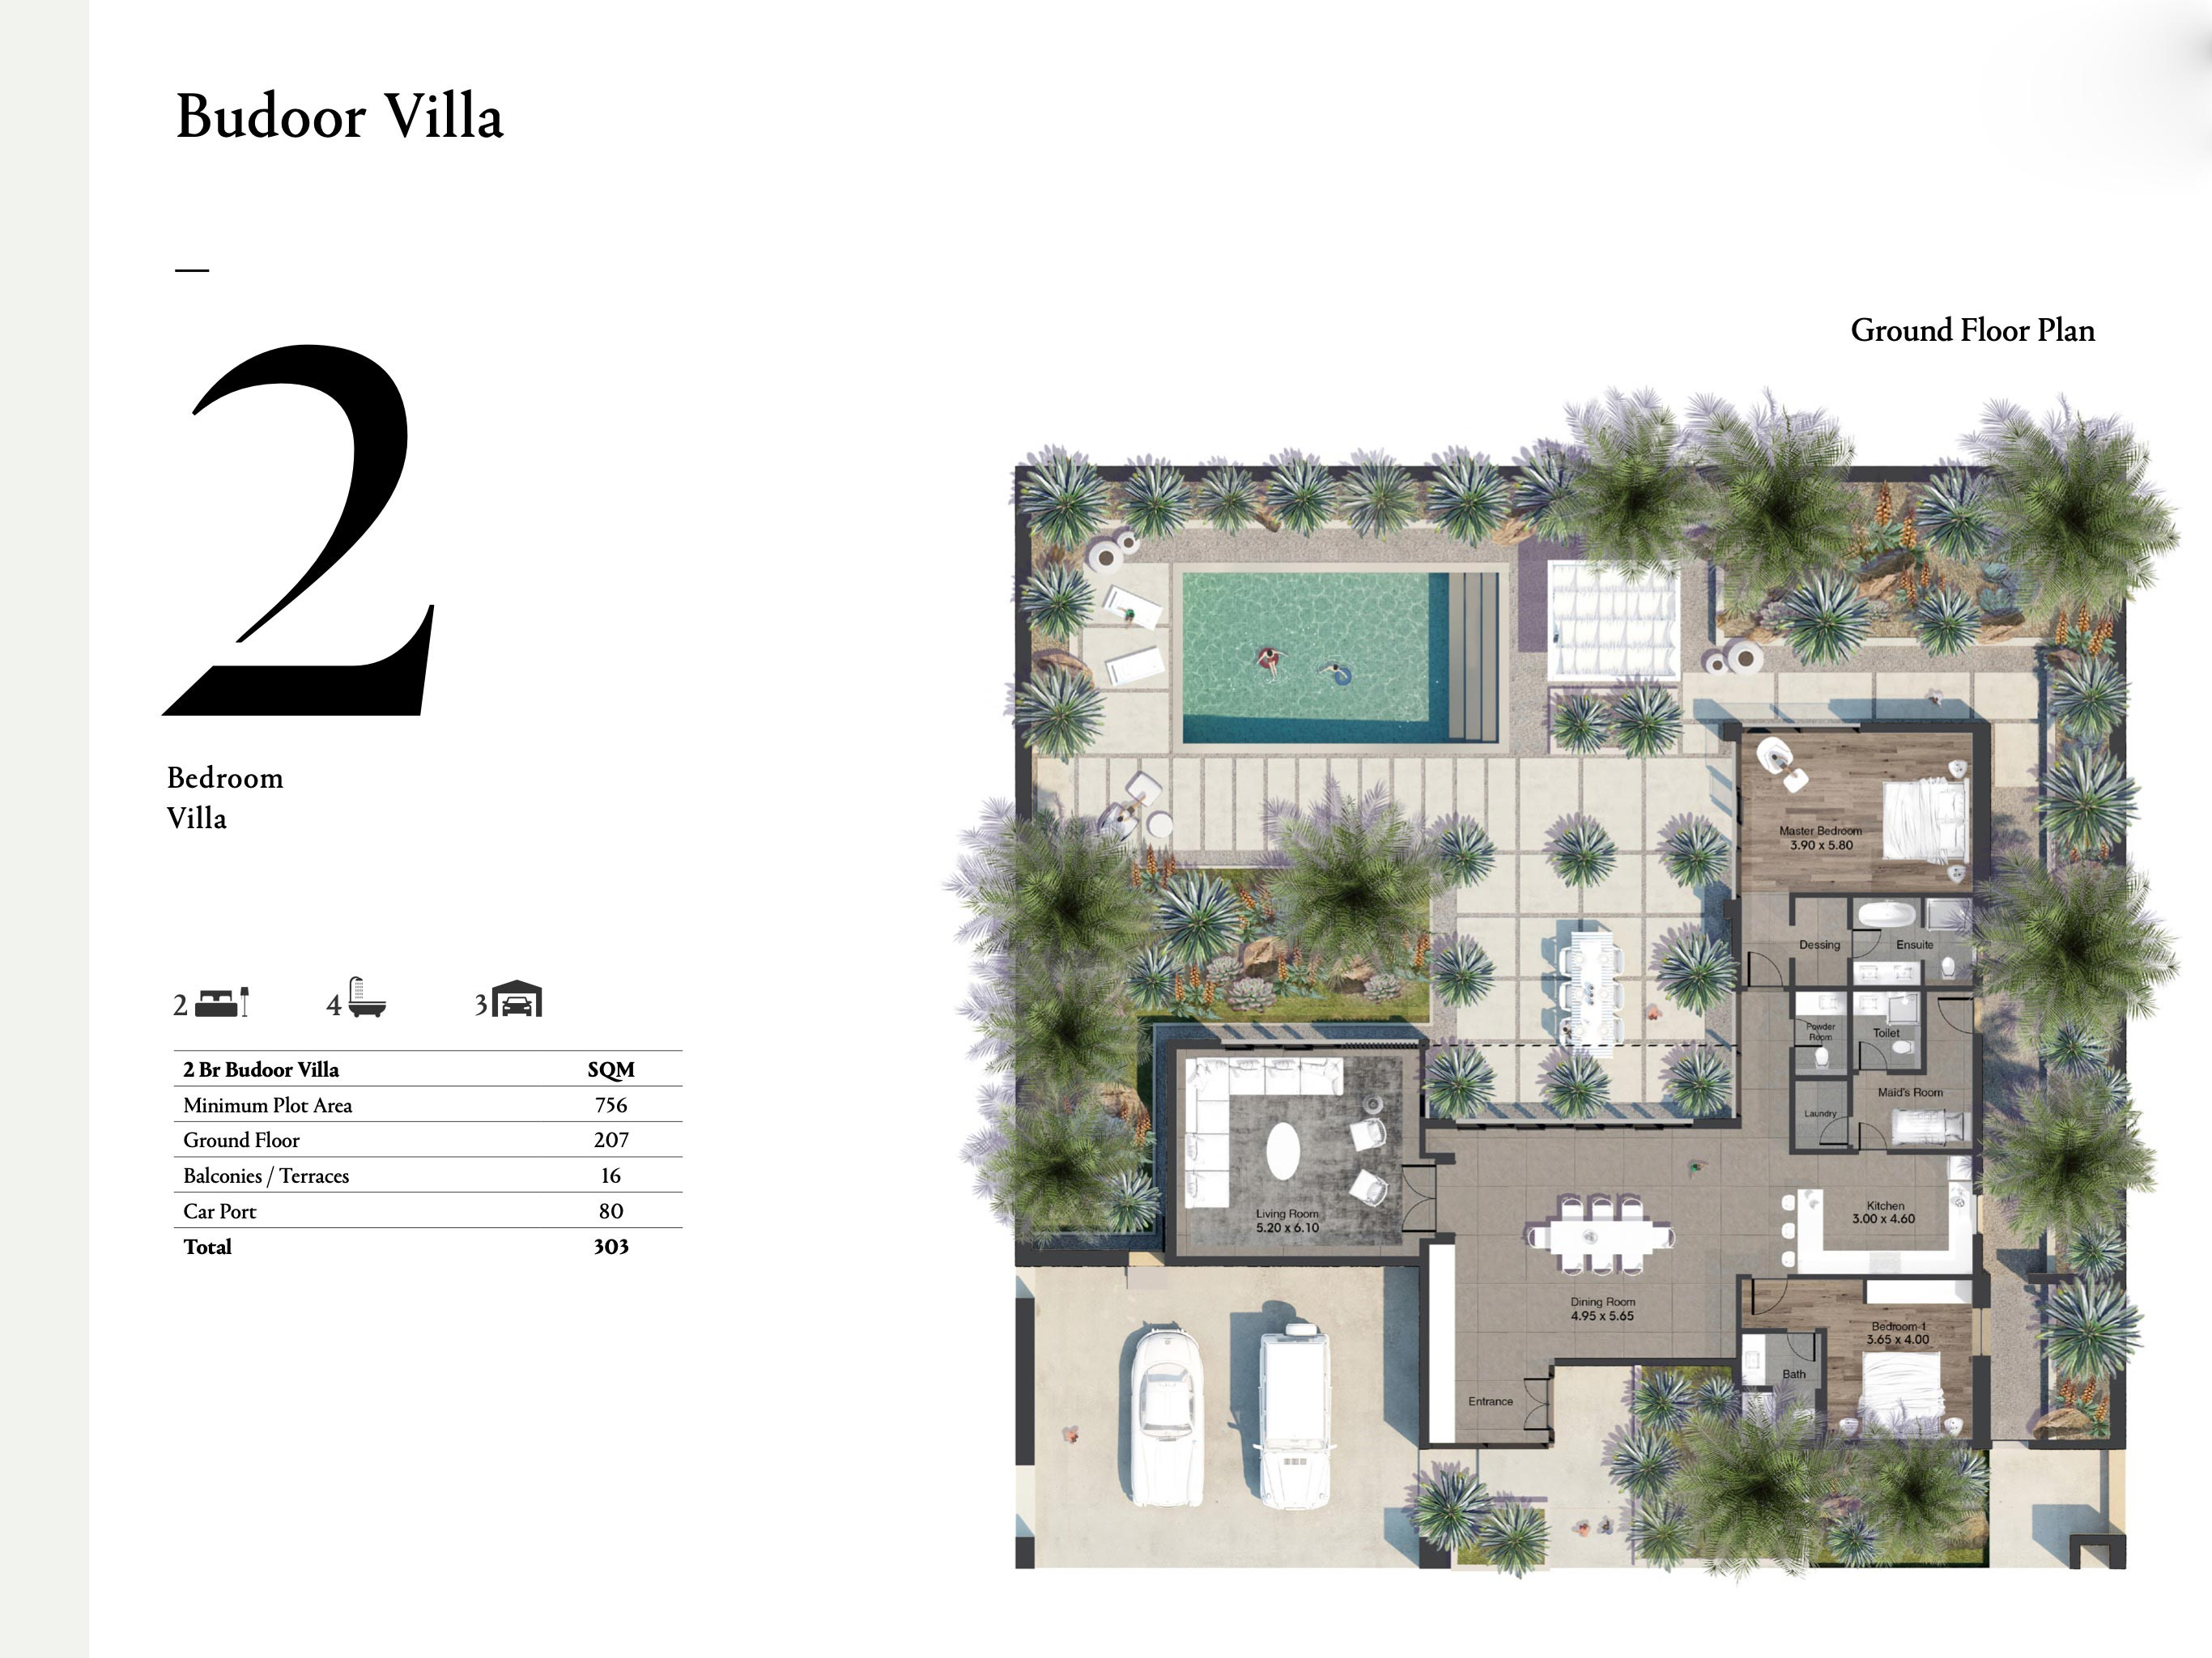 Budoor Villa 2 Bedroom units with a size area of 303 sqm